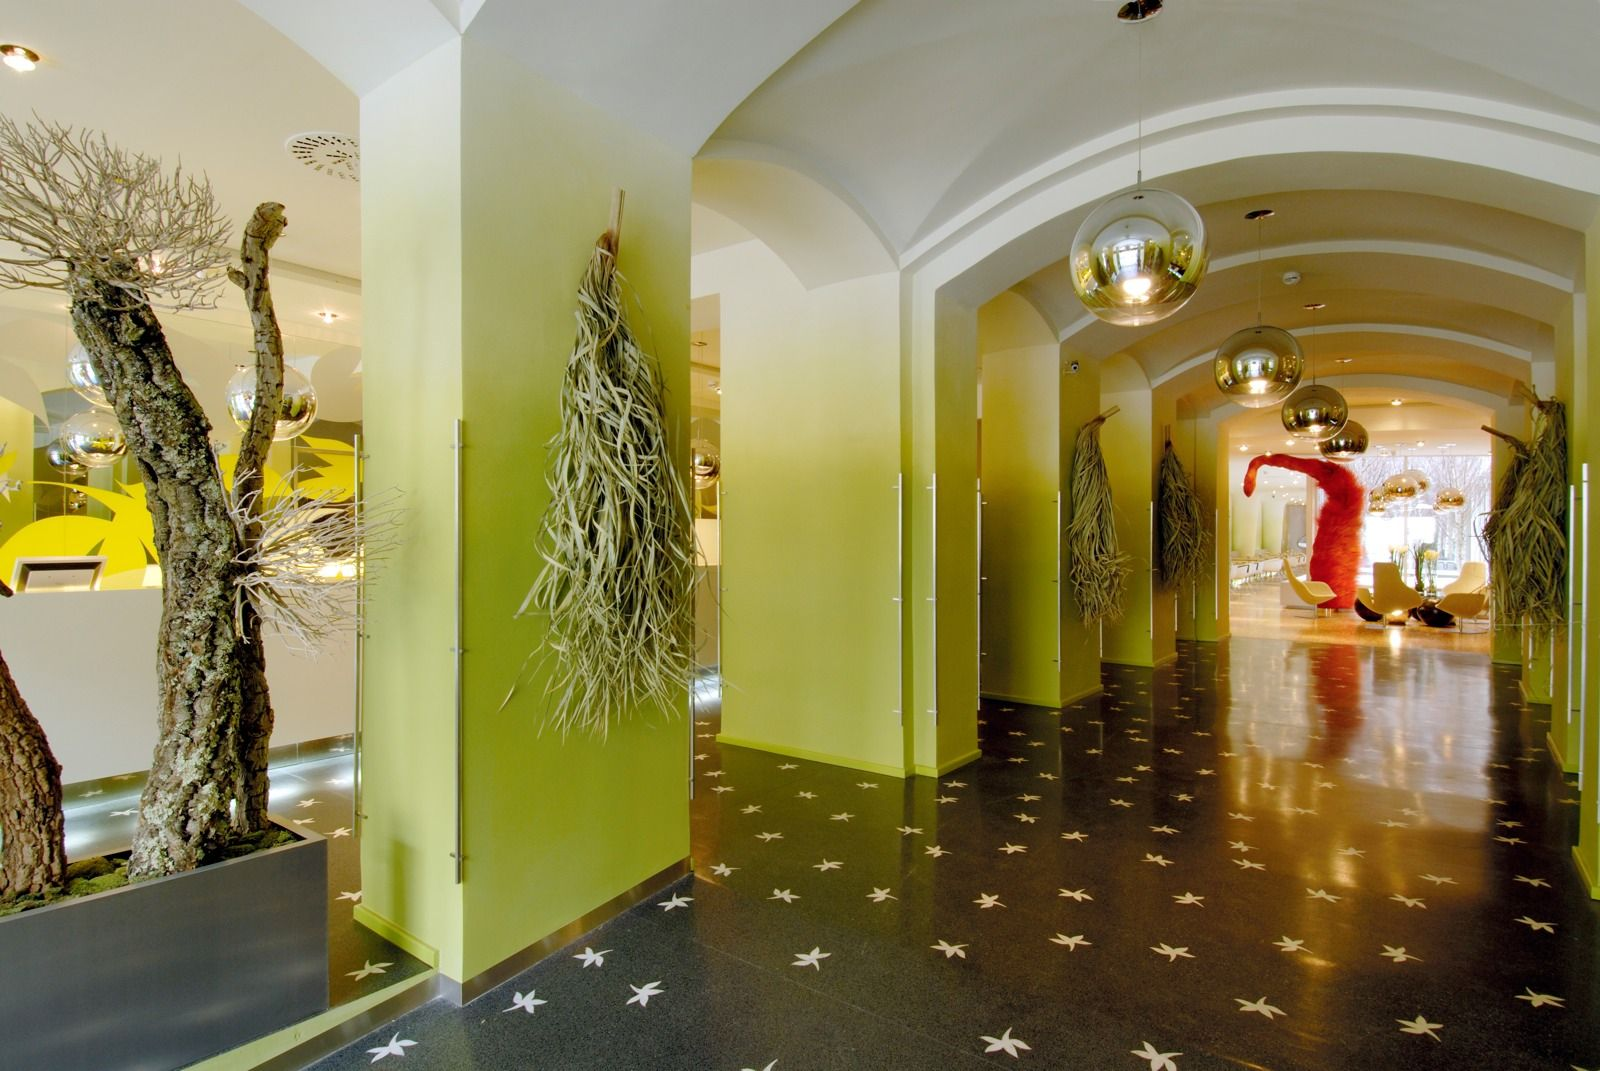 Hotel Yasmin Is A Luxury Boutique In Prague Czech Republic Book On Splendia And Benefit From Exclusive Special Offers